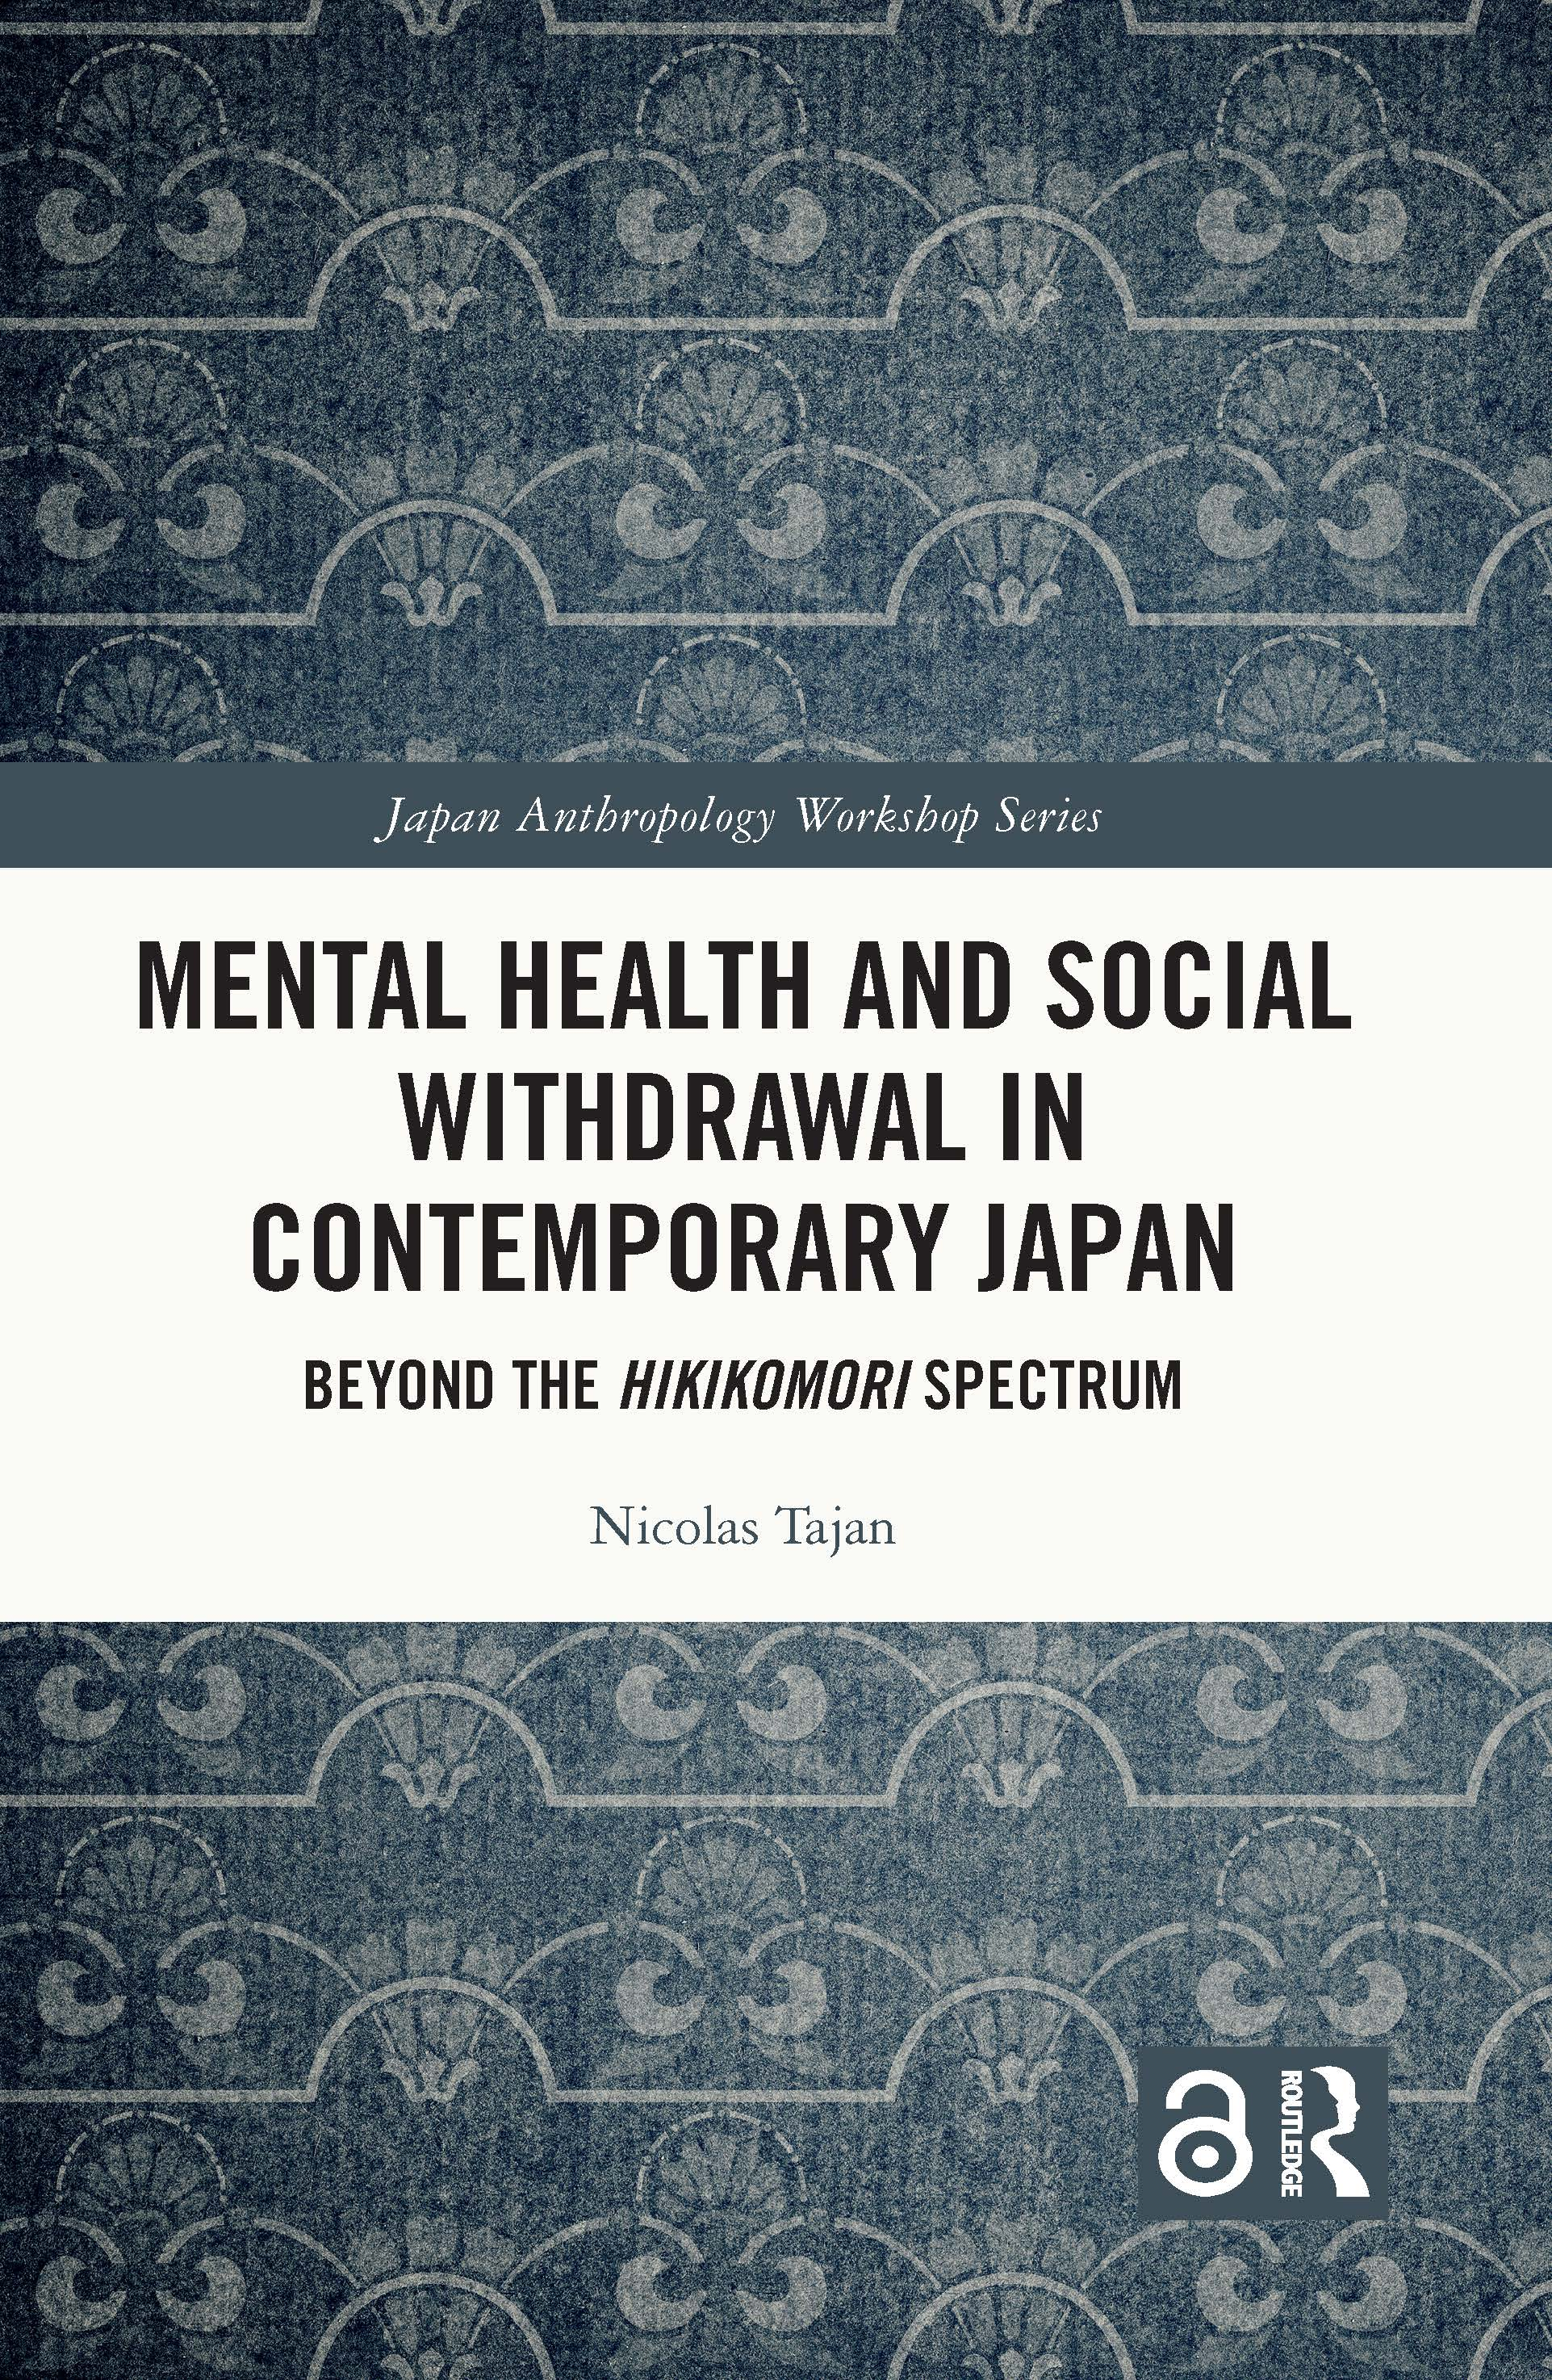 Mental Health and Social Withdrawal in Contemporary Japan